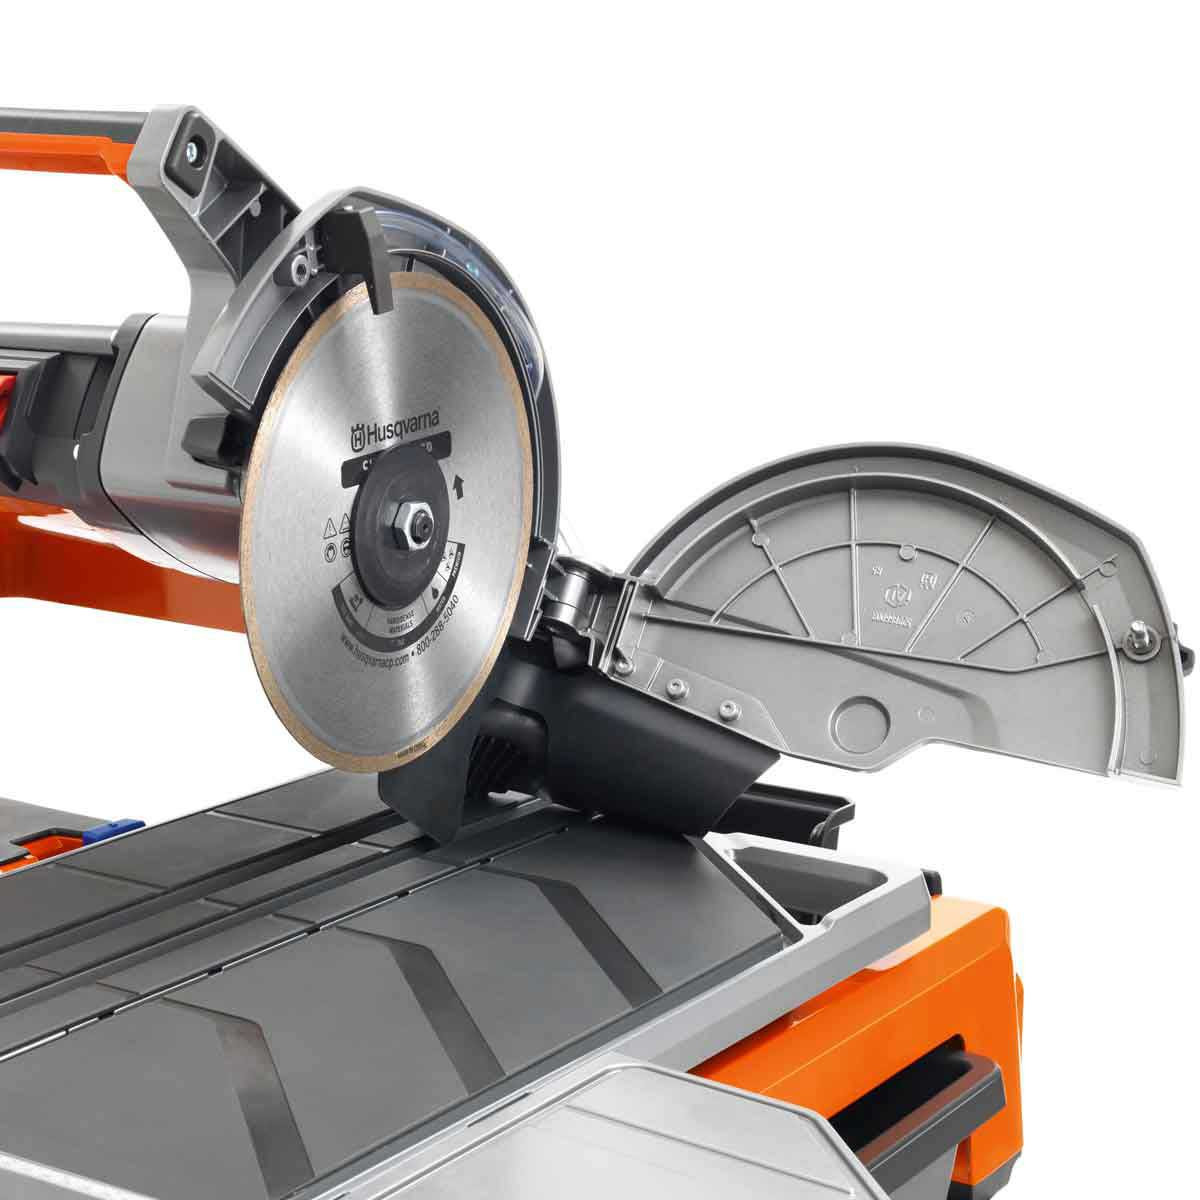 Husqvarna tile saw easy blade replacement